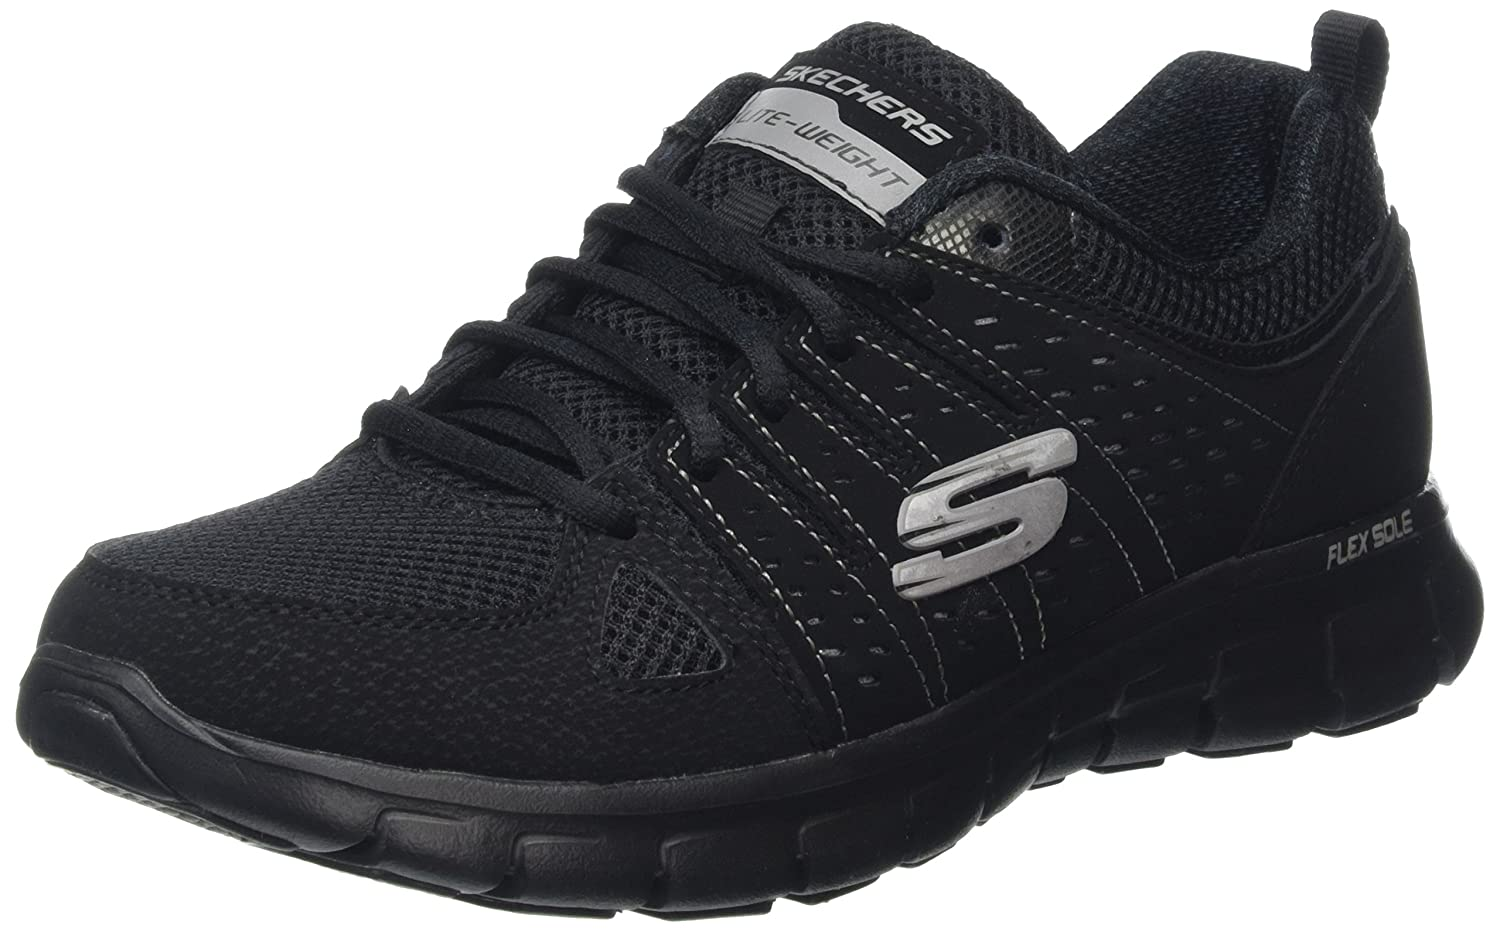 Skechers Sport Women's Synergy Look Book Fashion Sneaker B01LTB6E1W 6.5 C/D US|Black